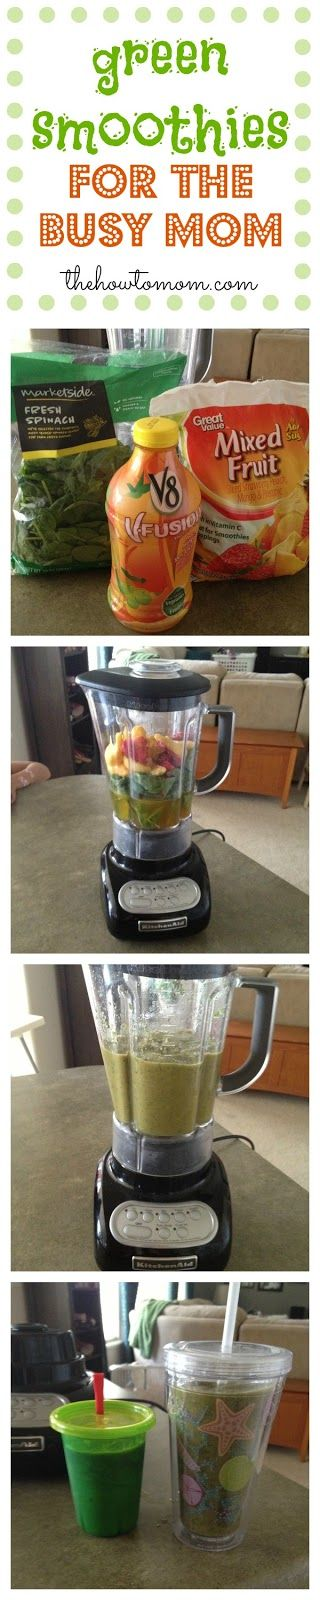 The How To Mom: yummy green smoothies for the busy mom